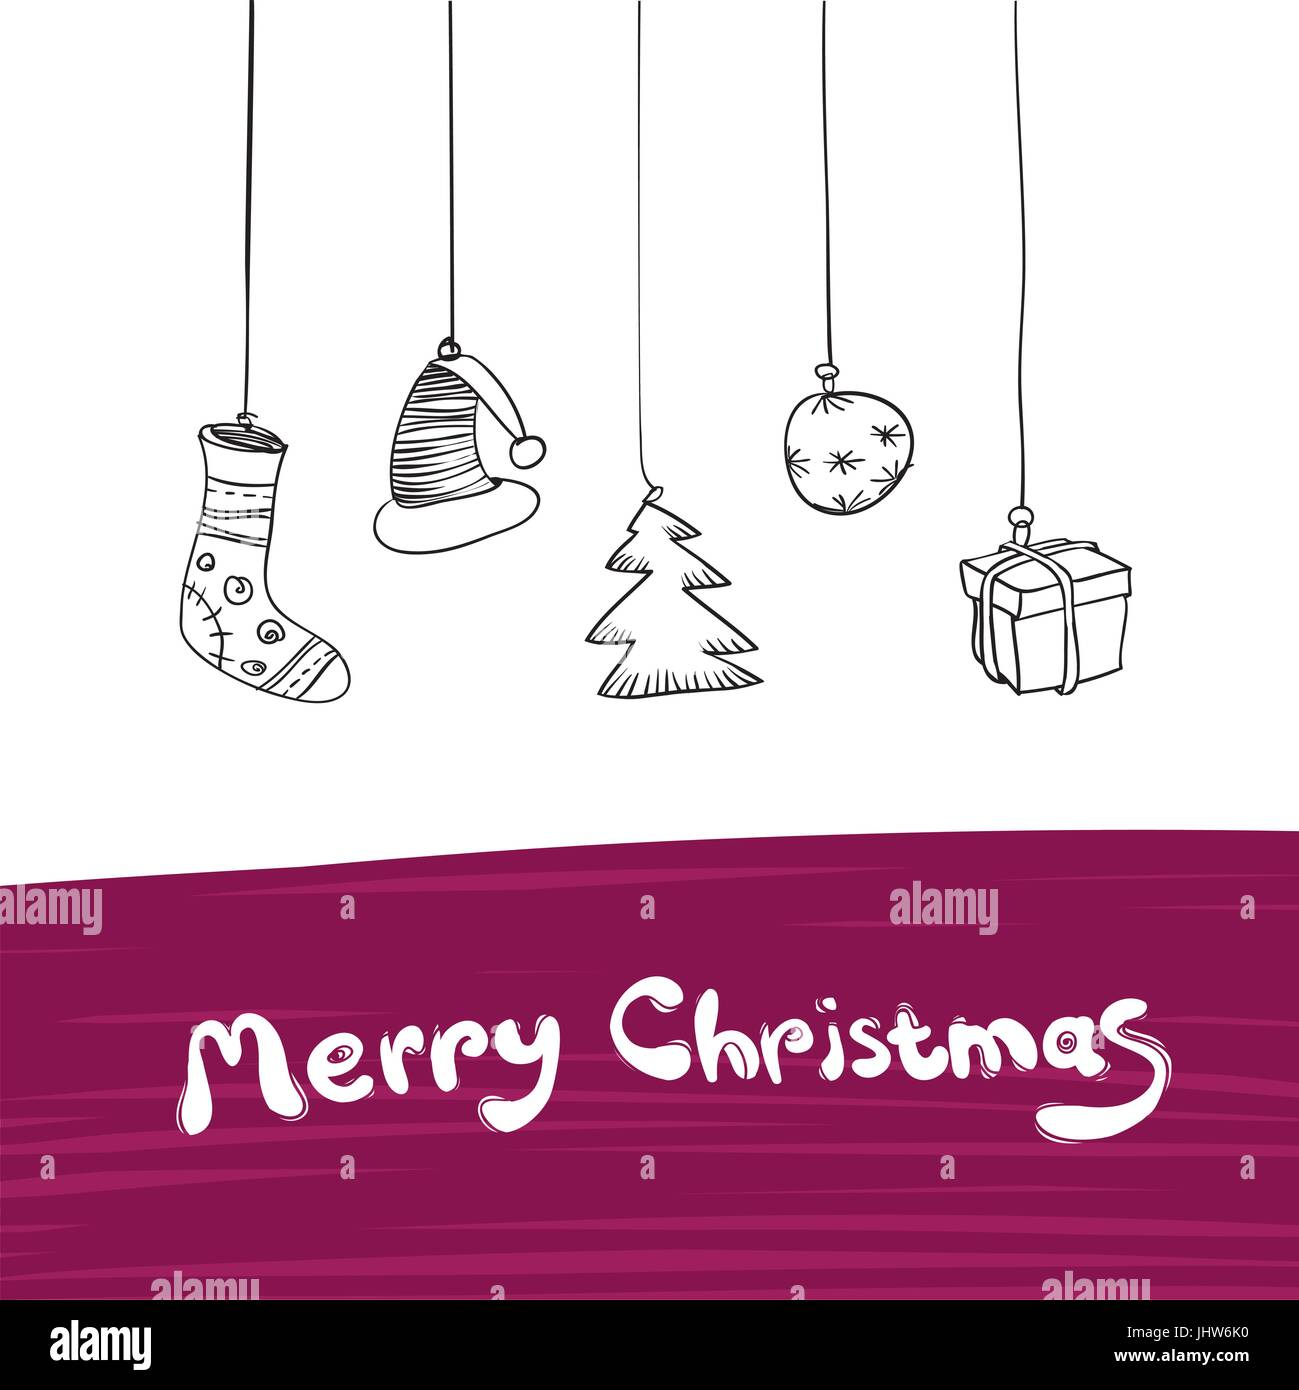 Merry Christmas Gifts Illustration. Vector, Eps8. Stock Vector